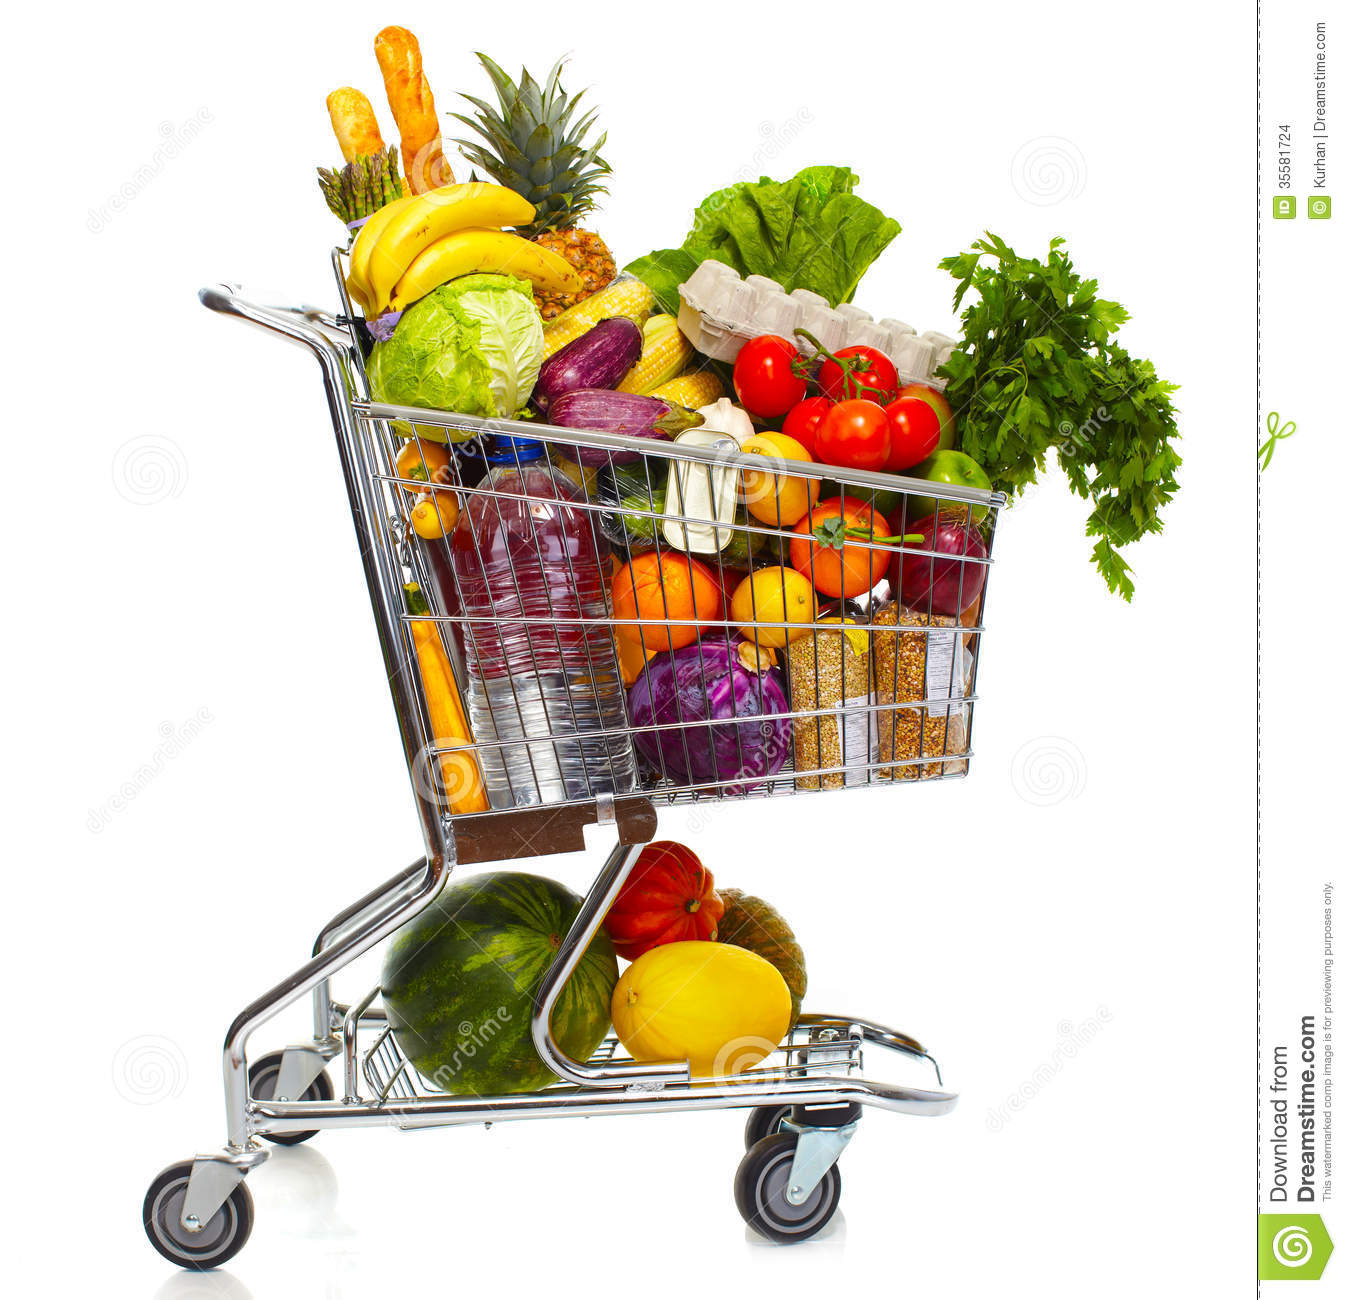 Half Full Grocery Cart on Quotesfabcom